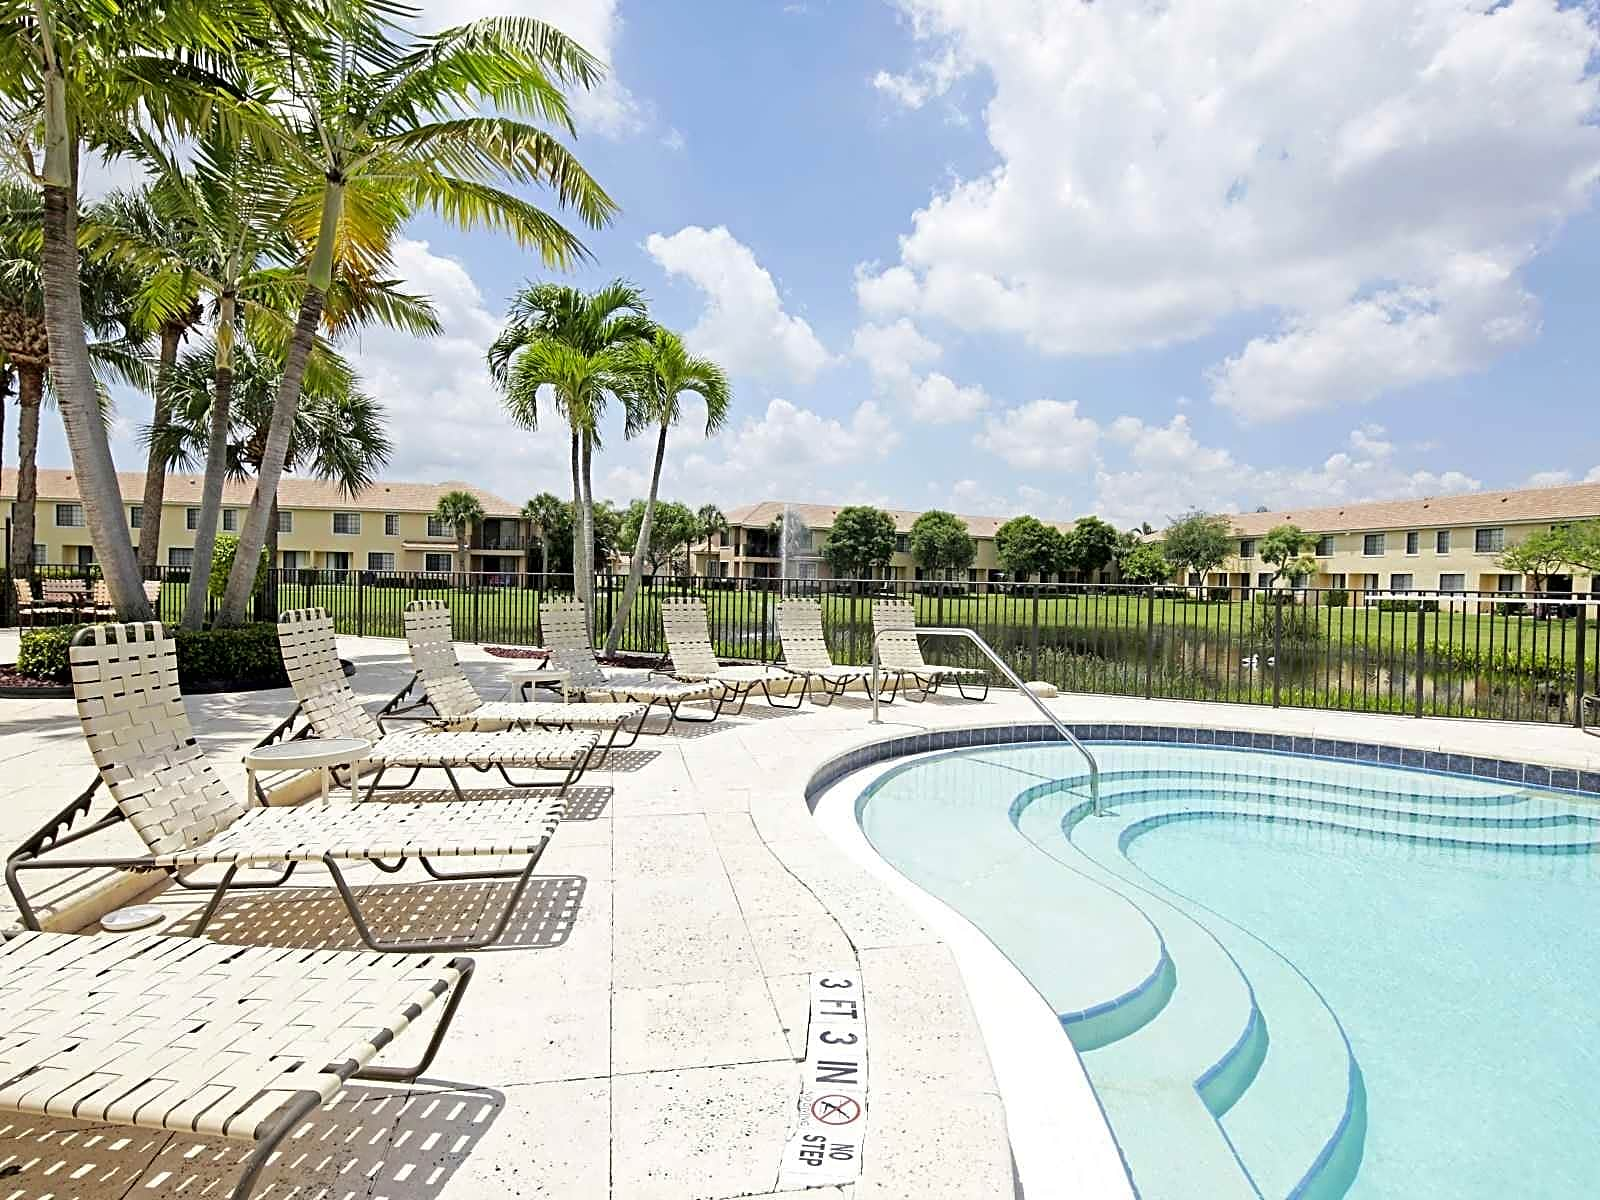 The Enclave At Delray Beach for rent in Delray Beach